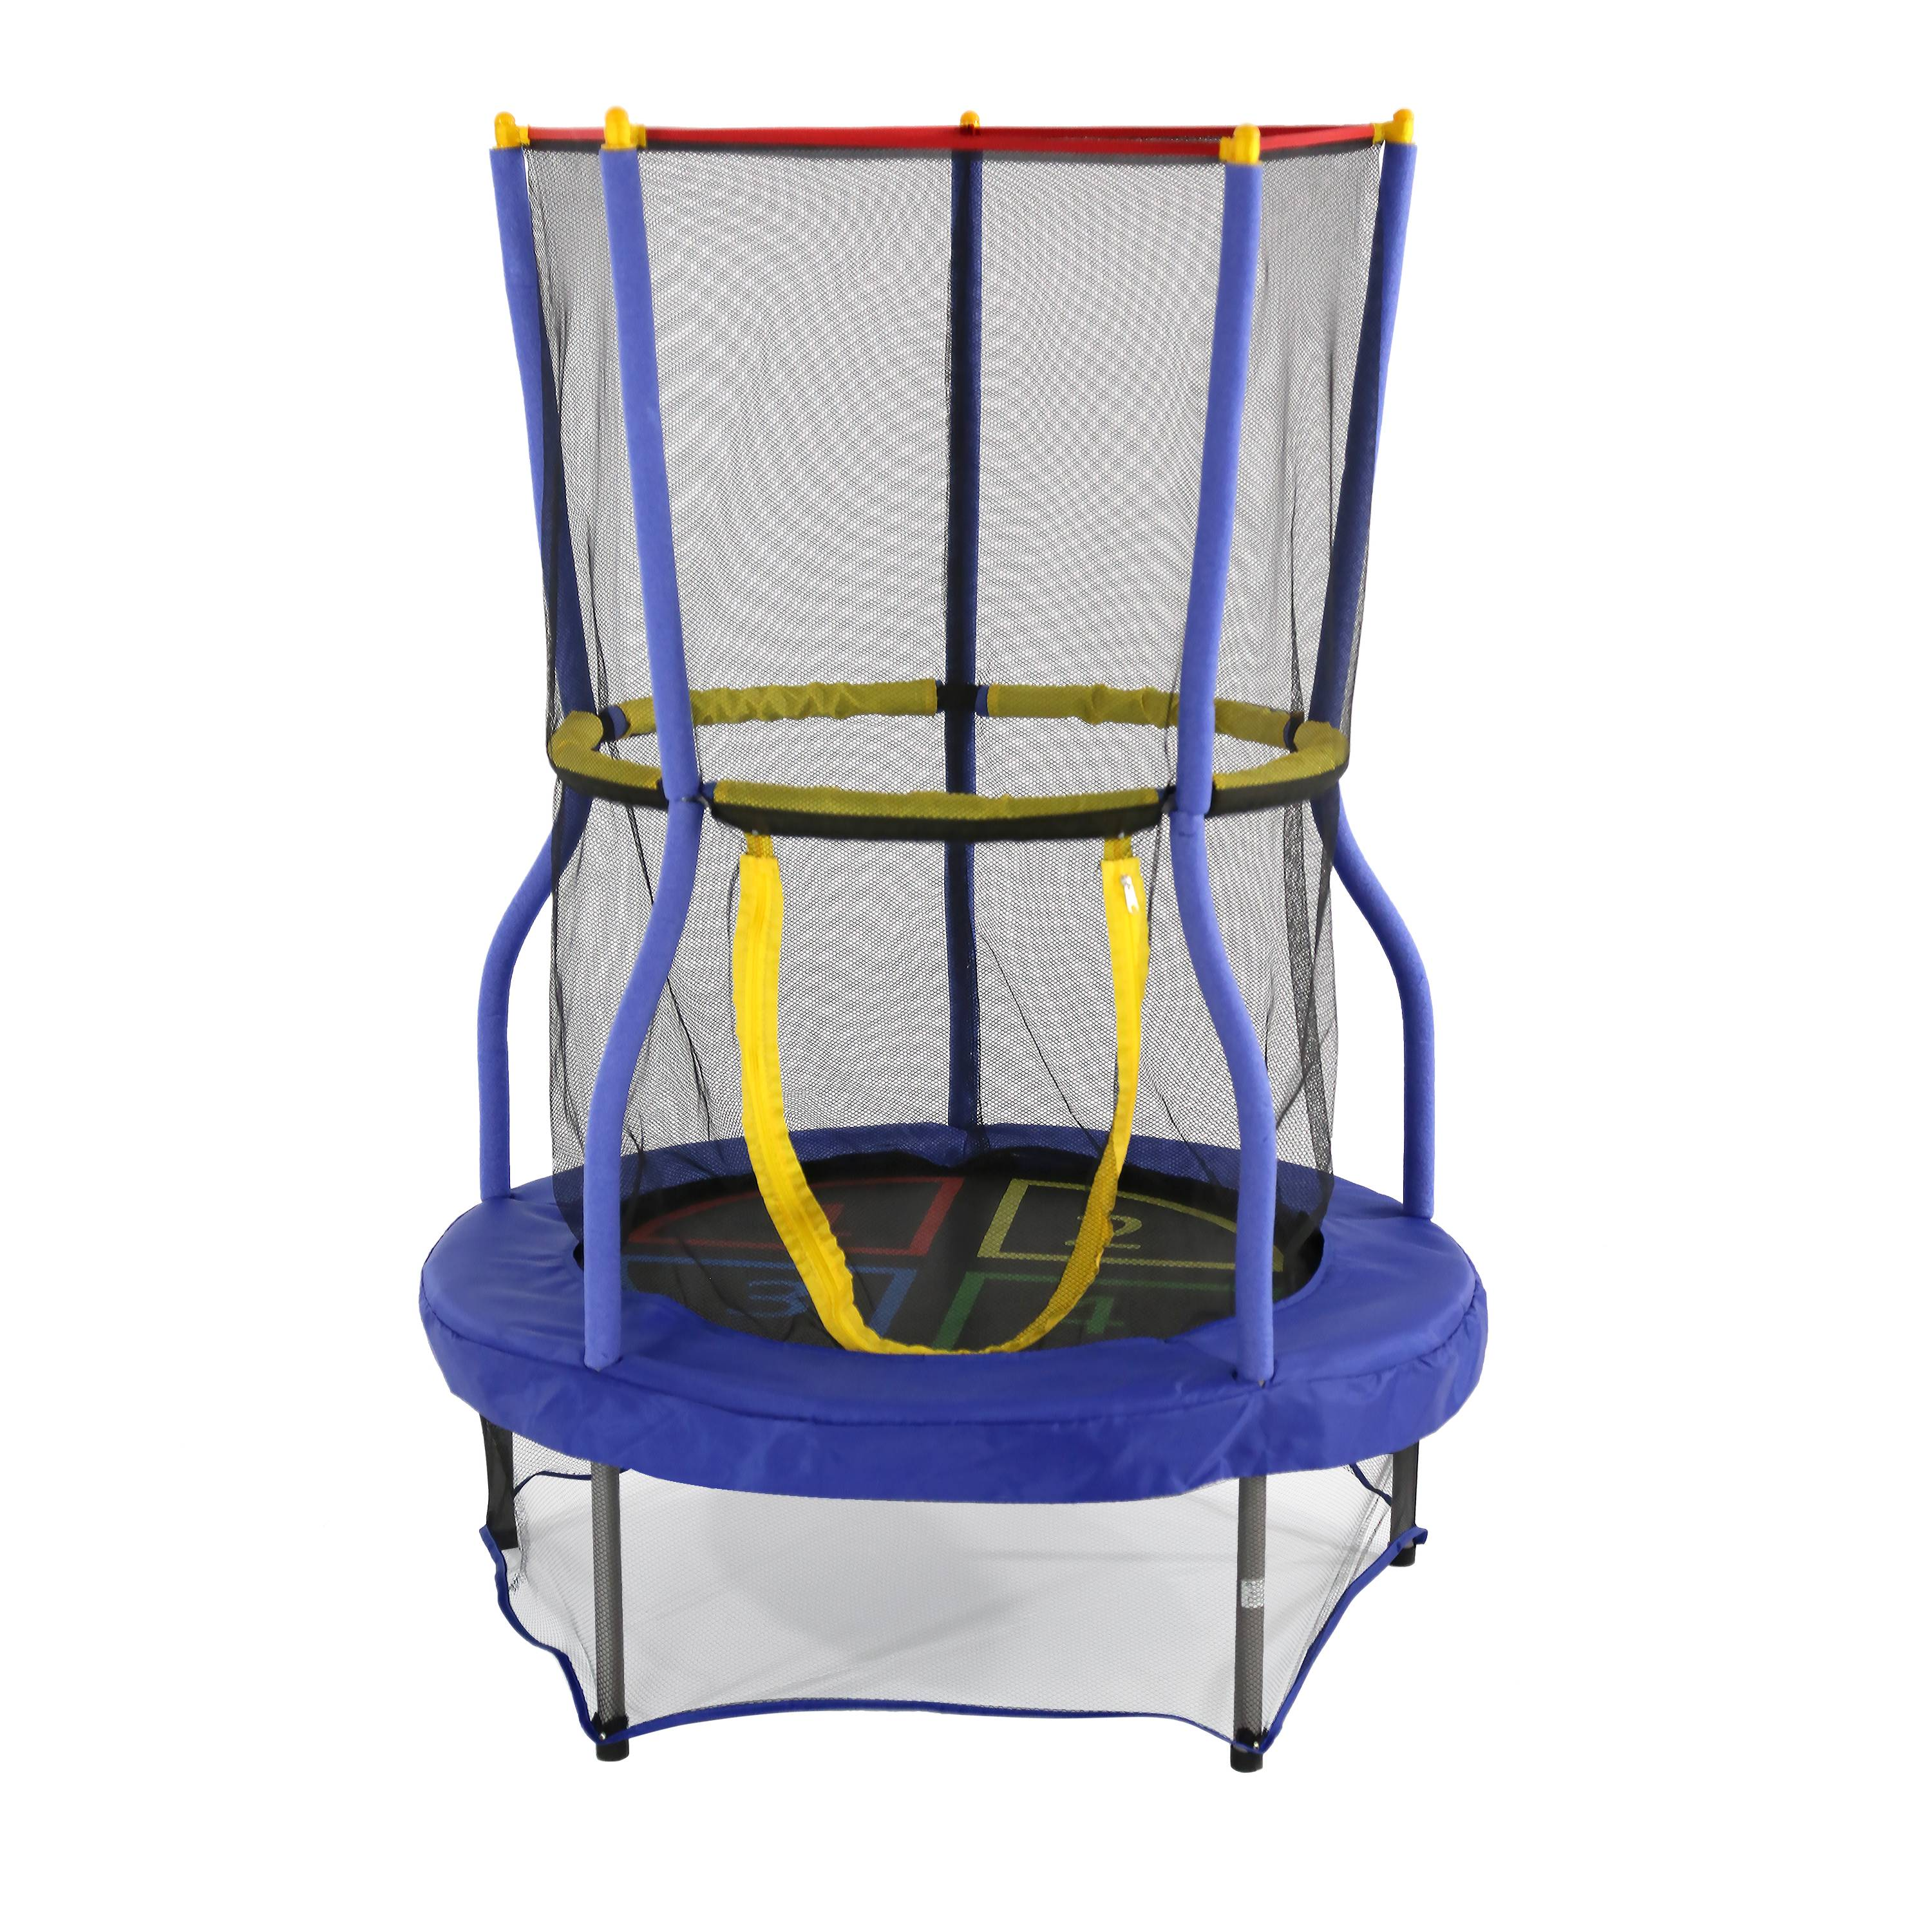 Skywalker Trampolines 40-Inch Bounce-N-Learn Mini Bouncer Trampoline, with Safety Enclosure, Blue